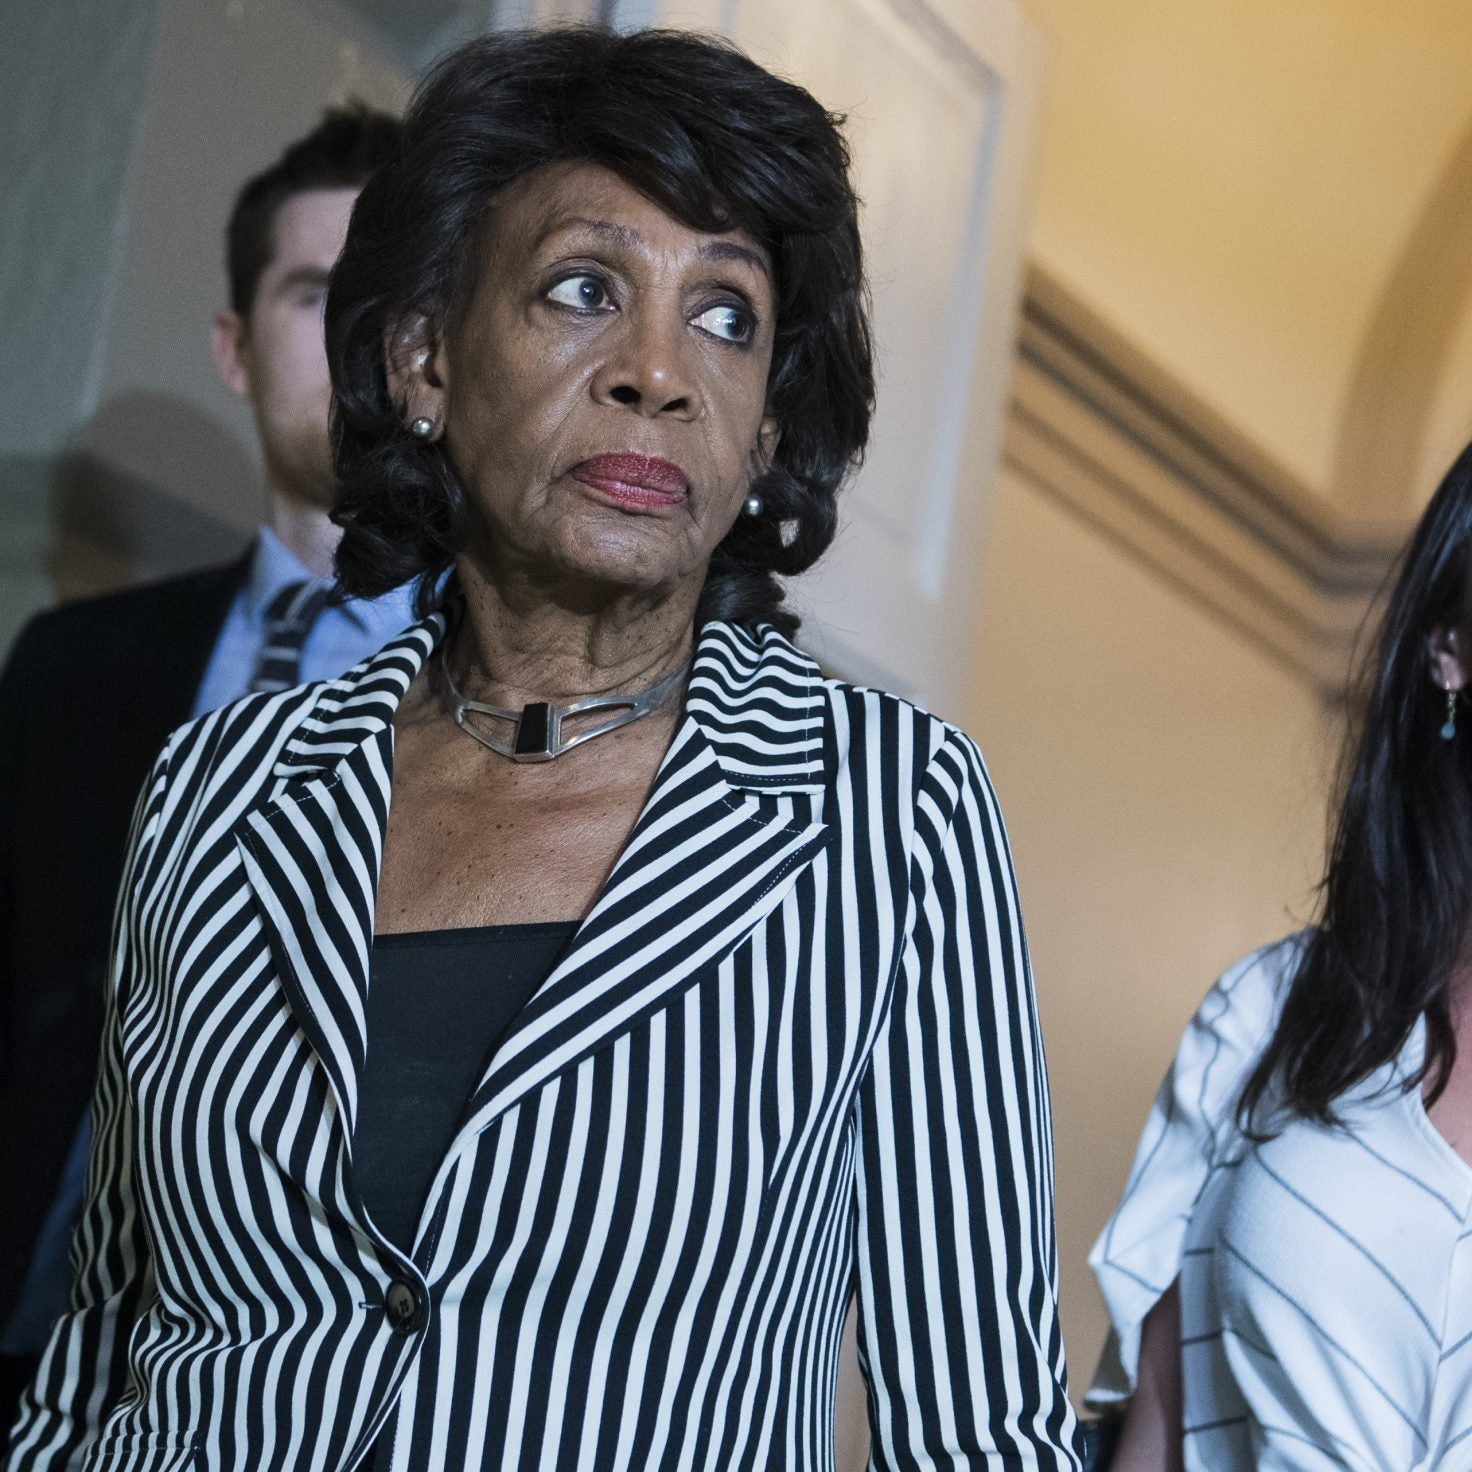 Rep. Maxine Waters Vows To Continue Work To Get Rid Of Trump, Should Impeachment Fail